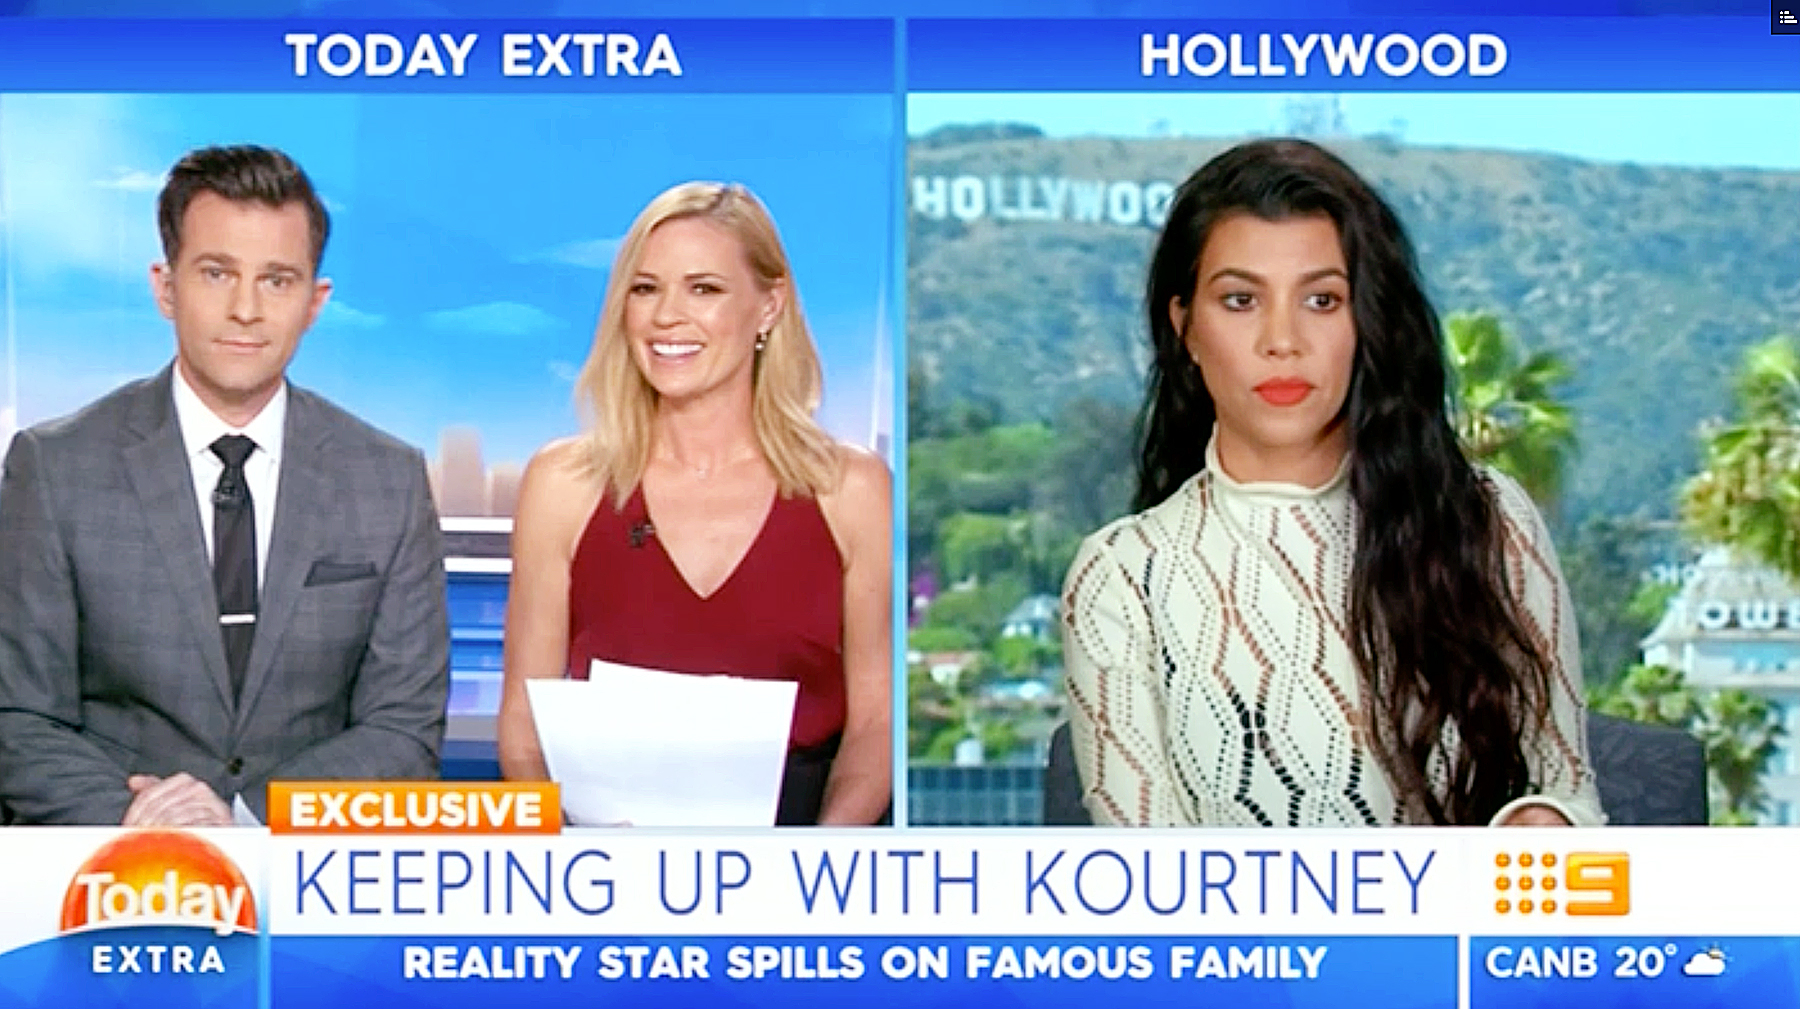 Kourtney Kardashian Today Extra